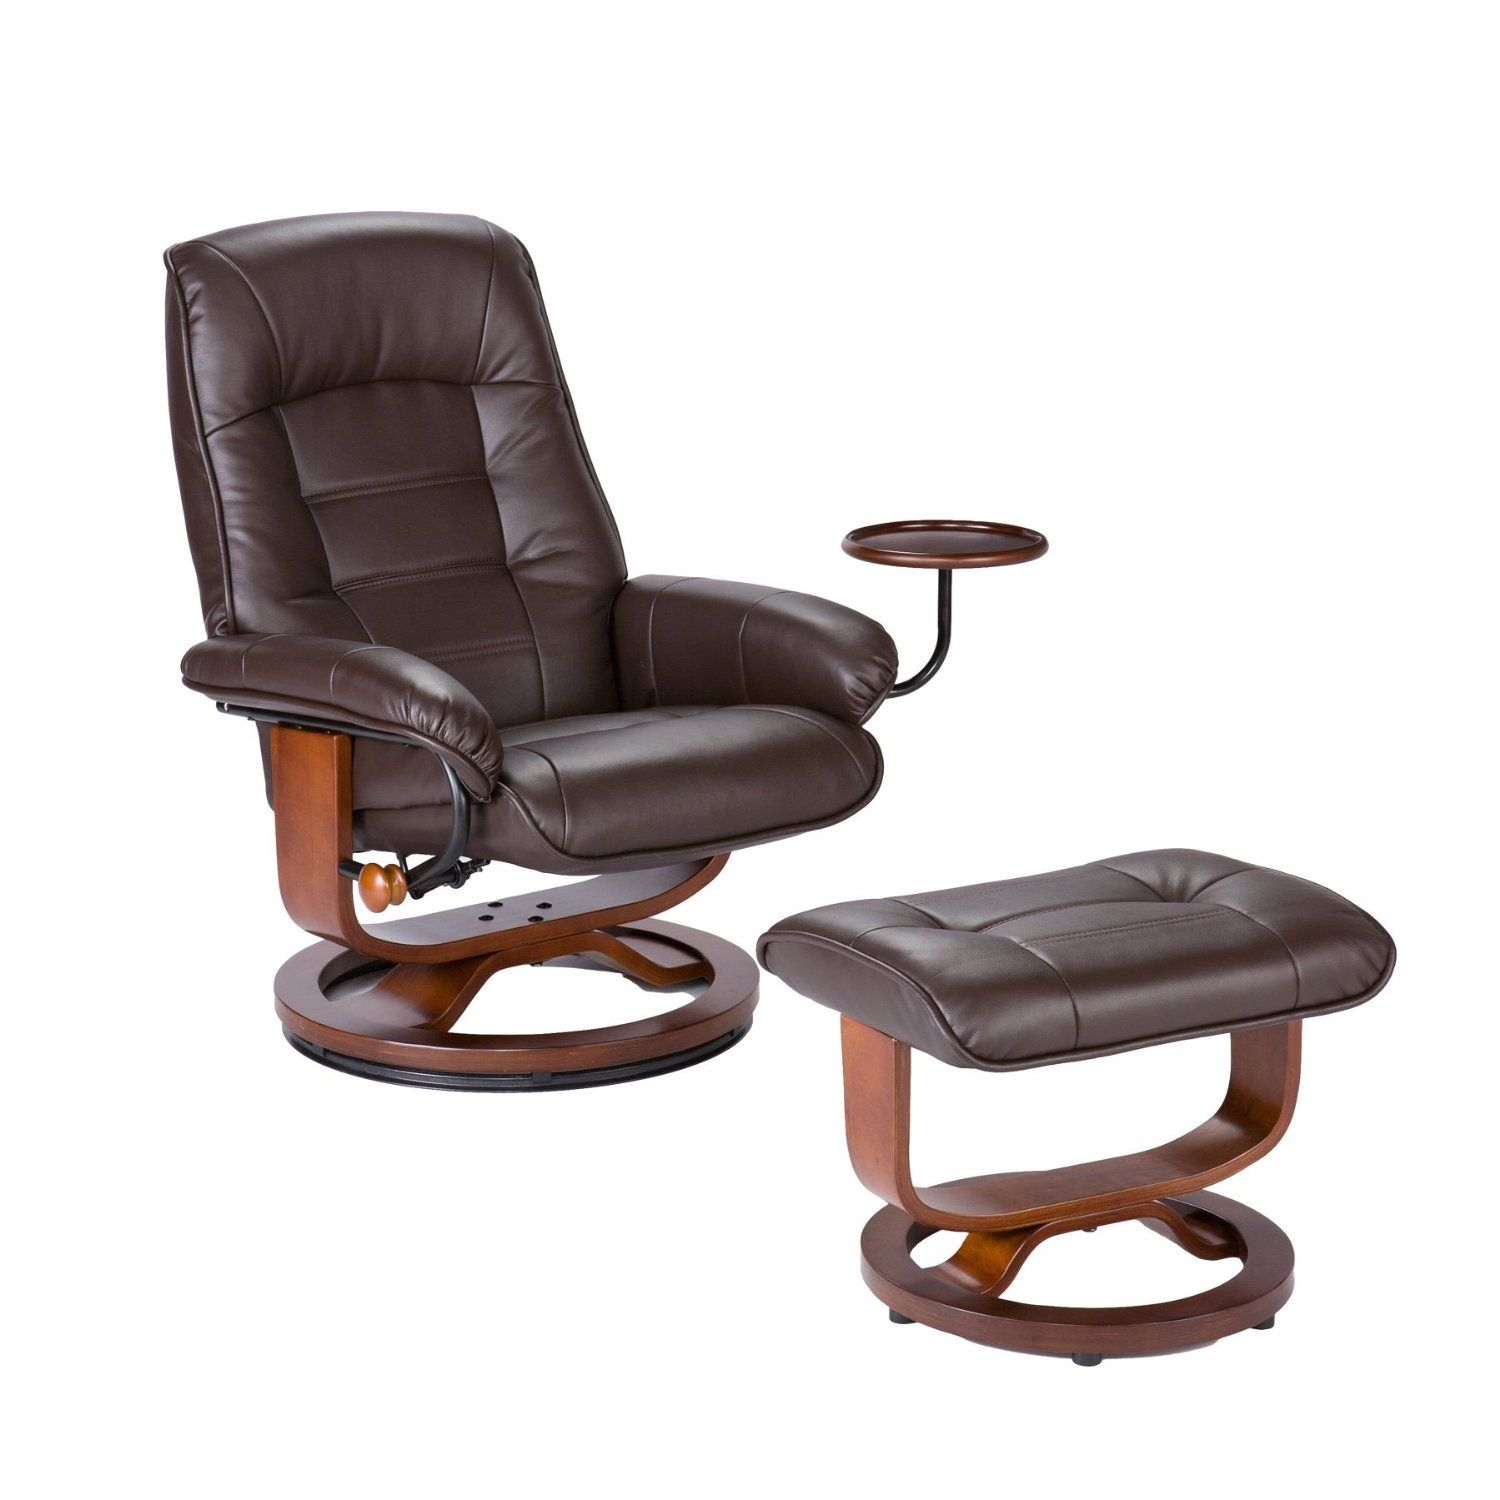 Southern Enterprises Leather Recliner with